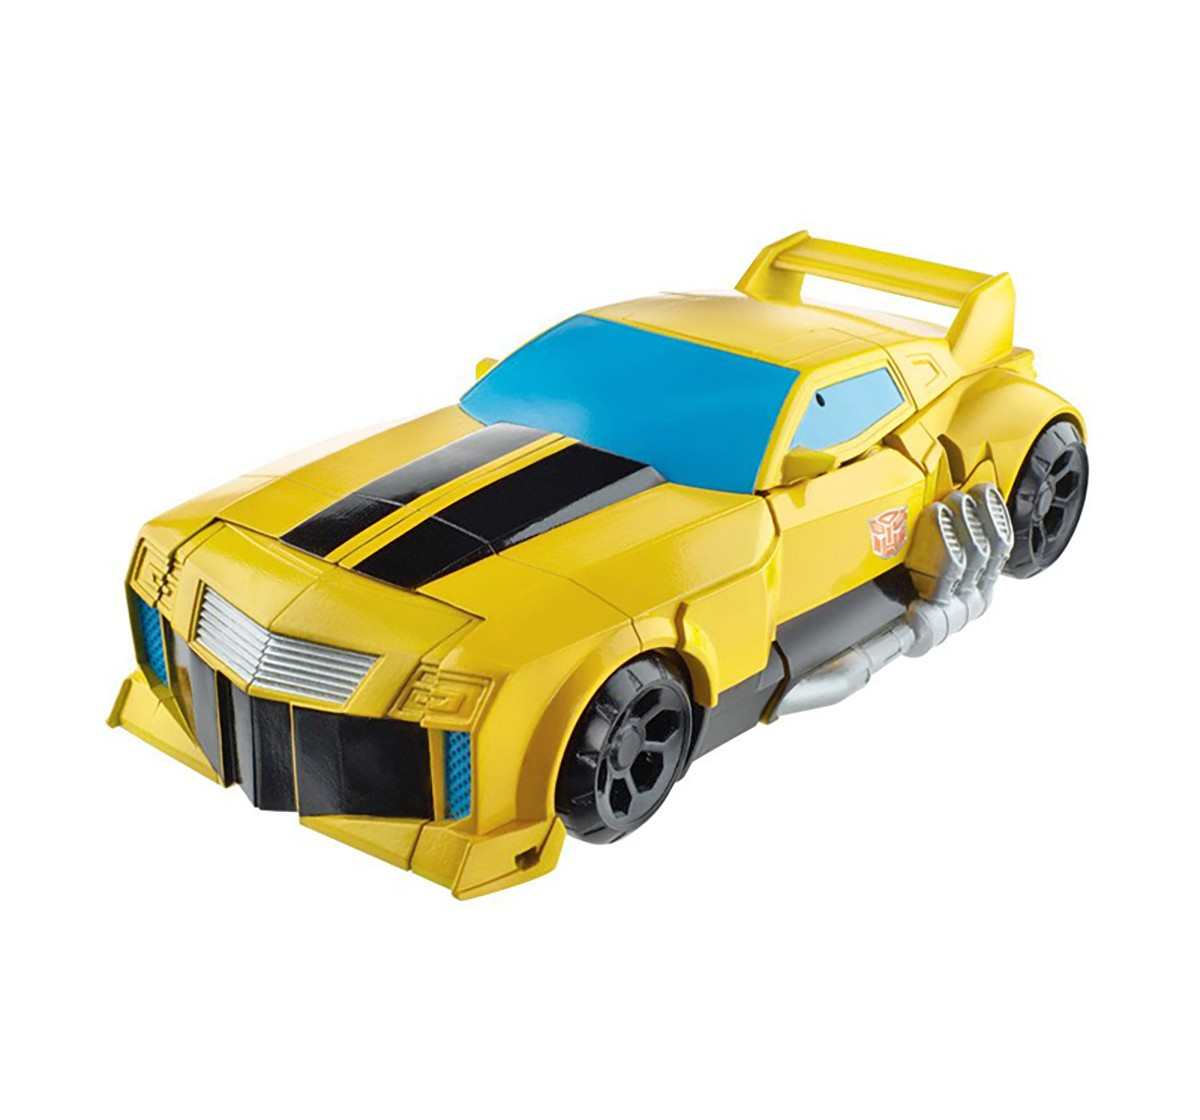 Transformers Cyber Commander Series Bumblebee, Yellow Action Figures for Kids age 4Y+ (Yellow)